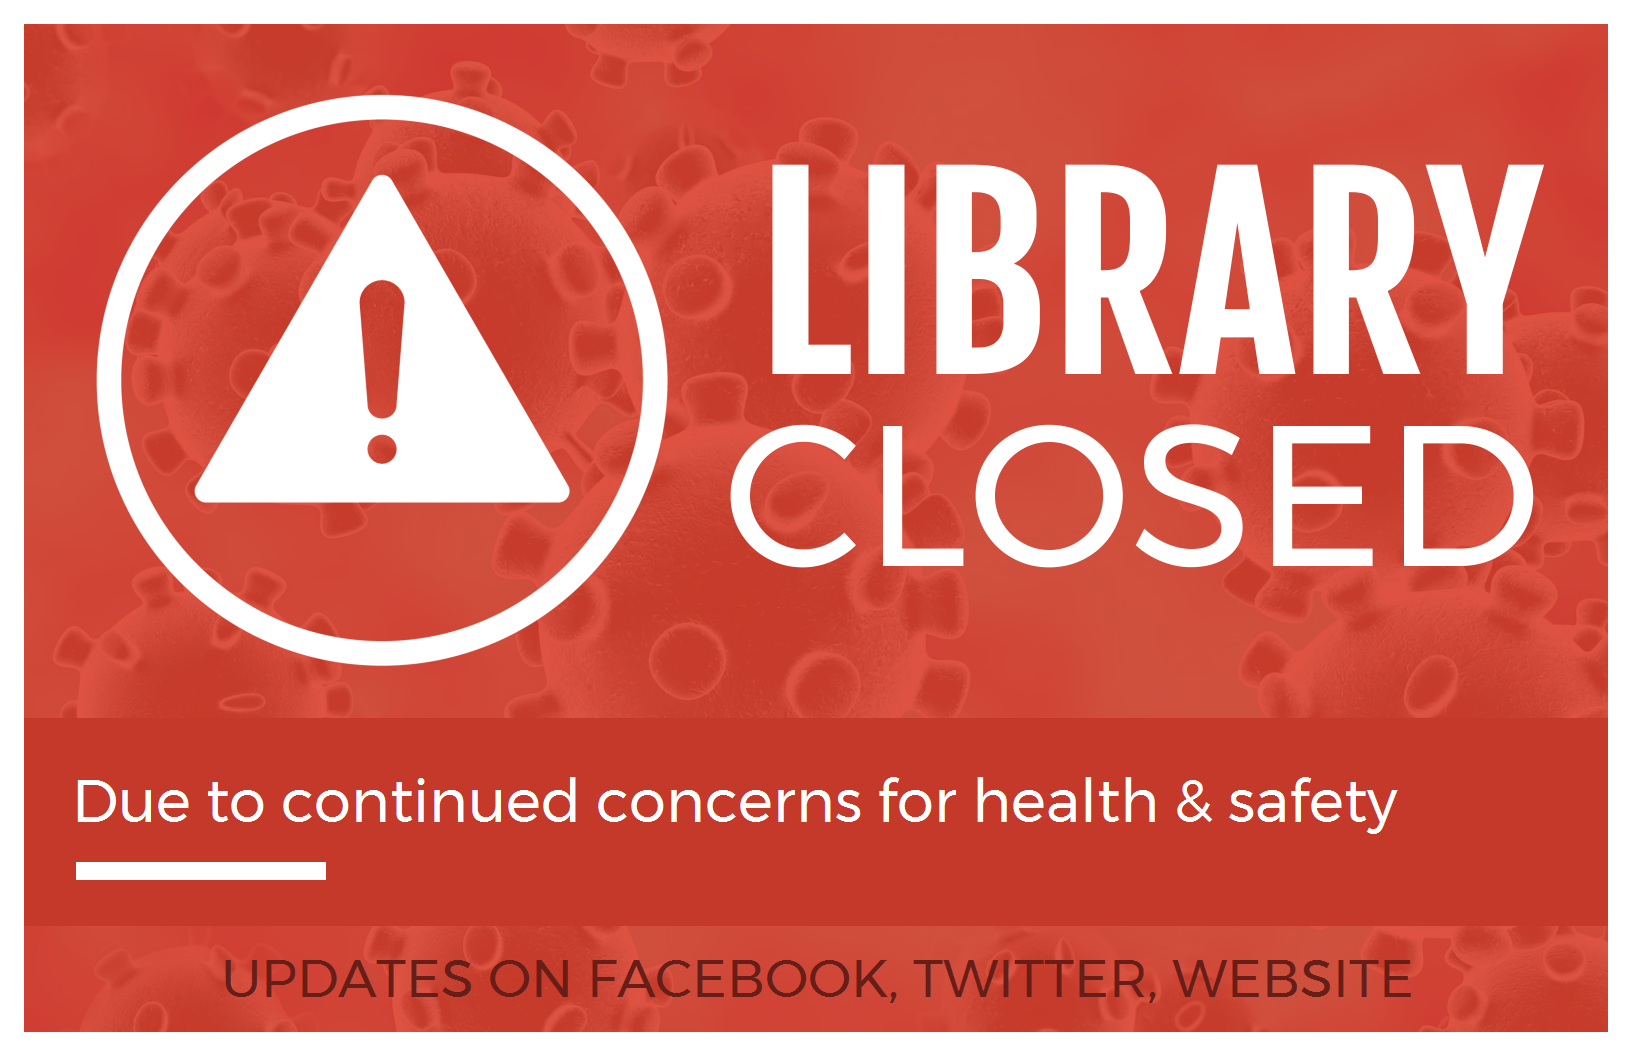 LibraryClosed